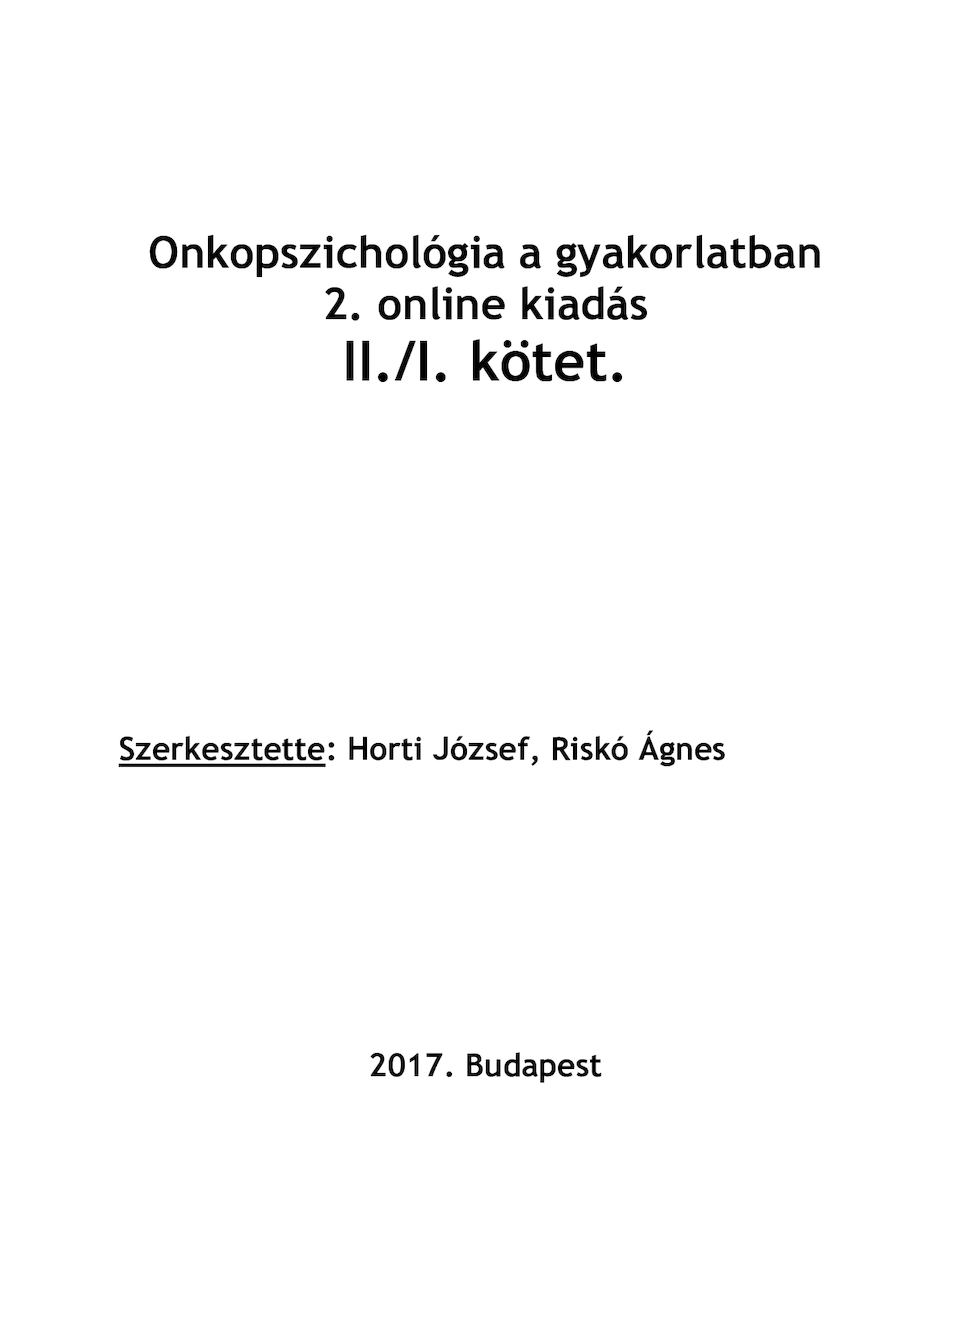 Petefészek daganatok | Hungarian Oncology Network - setalo.hu